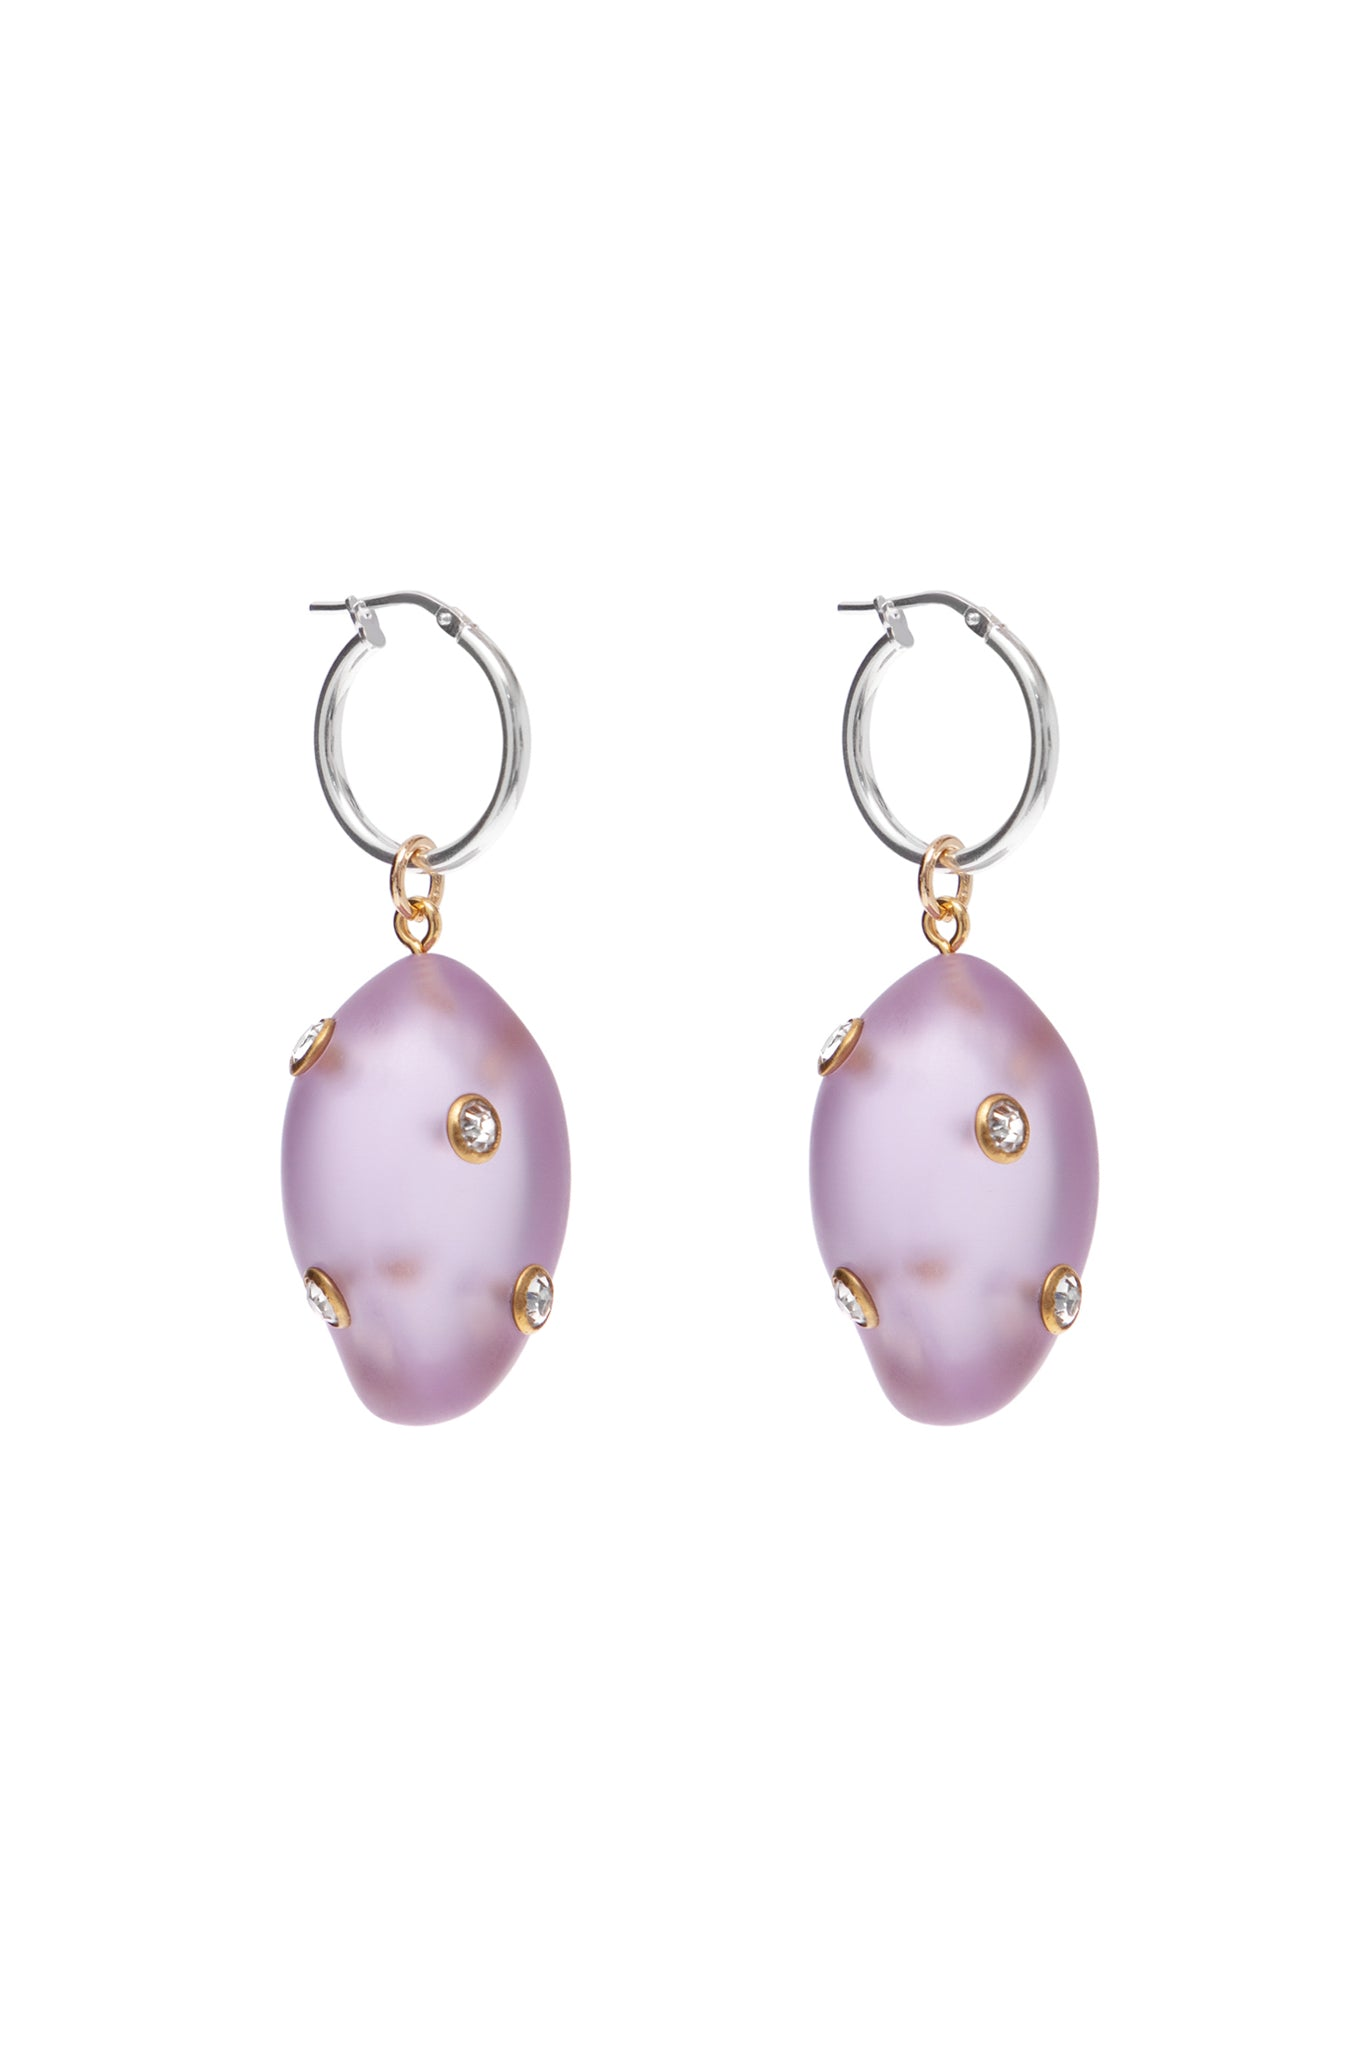 LILAC SMALL ARTSY EARRINGS